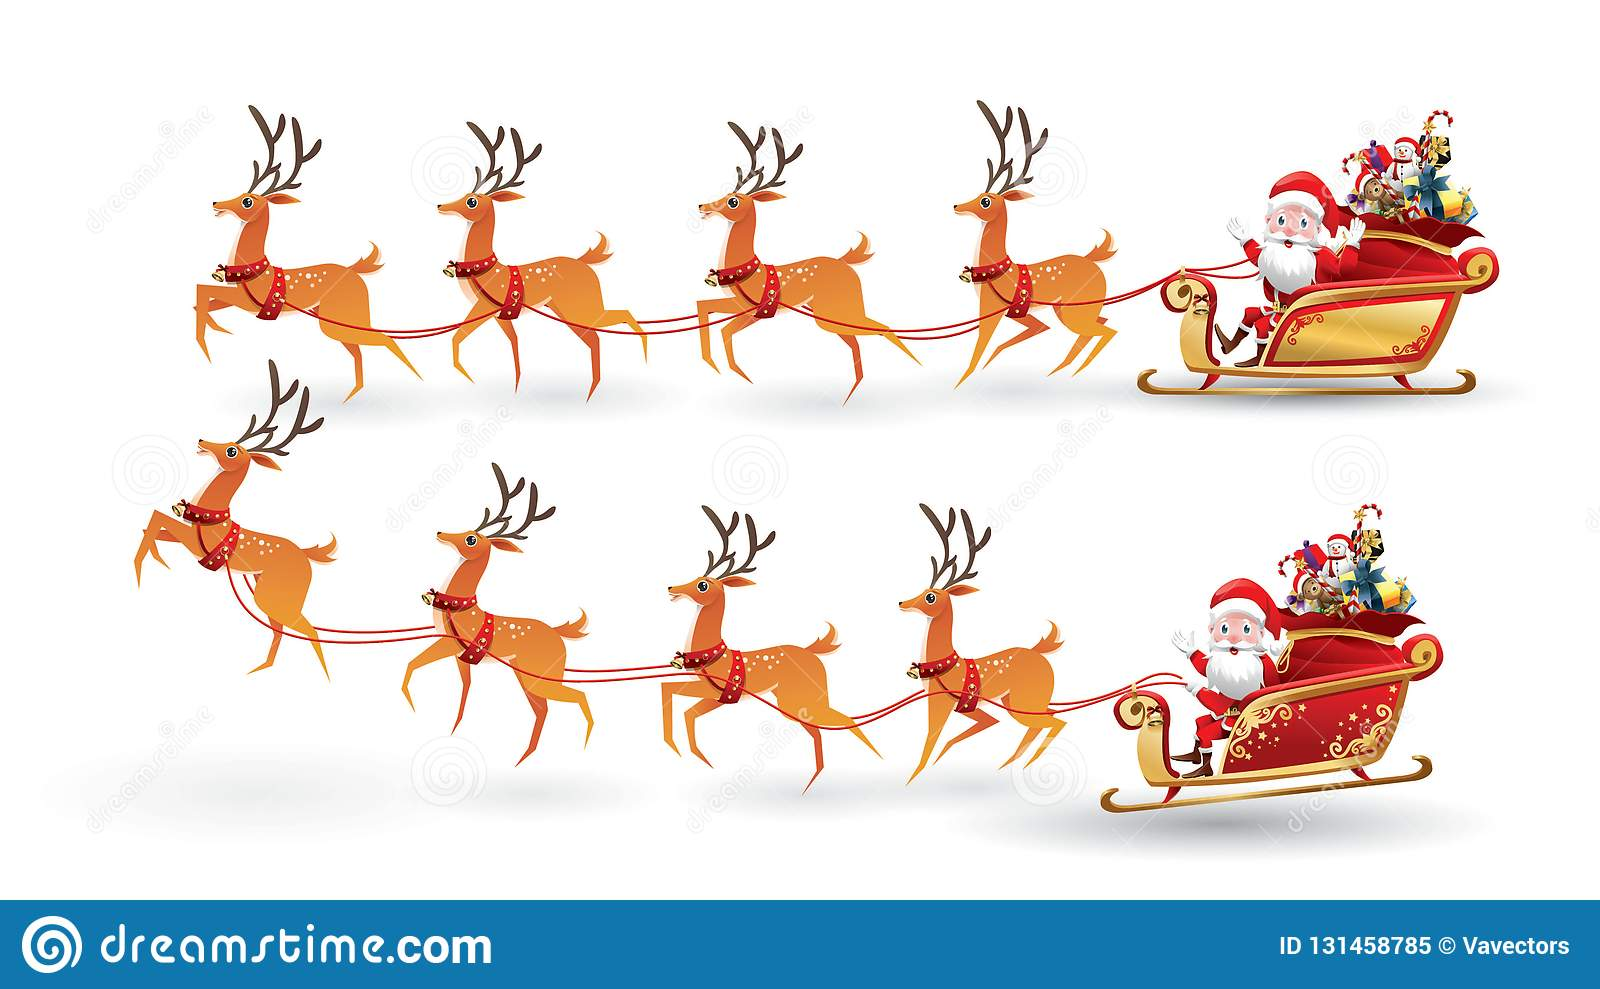 Cartoon Collection Of Christmas Santa Claus Rides Reindeer Sleigh On Christmas With Different Pose Emotion Vector Set Stock Vector Illustration Of Reindeer Flying 131458785